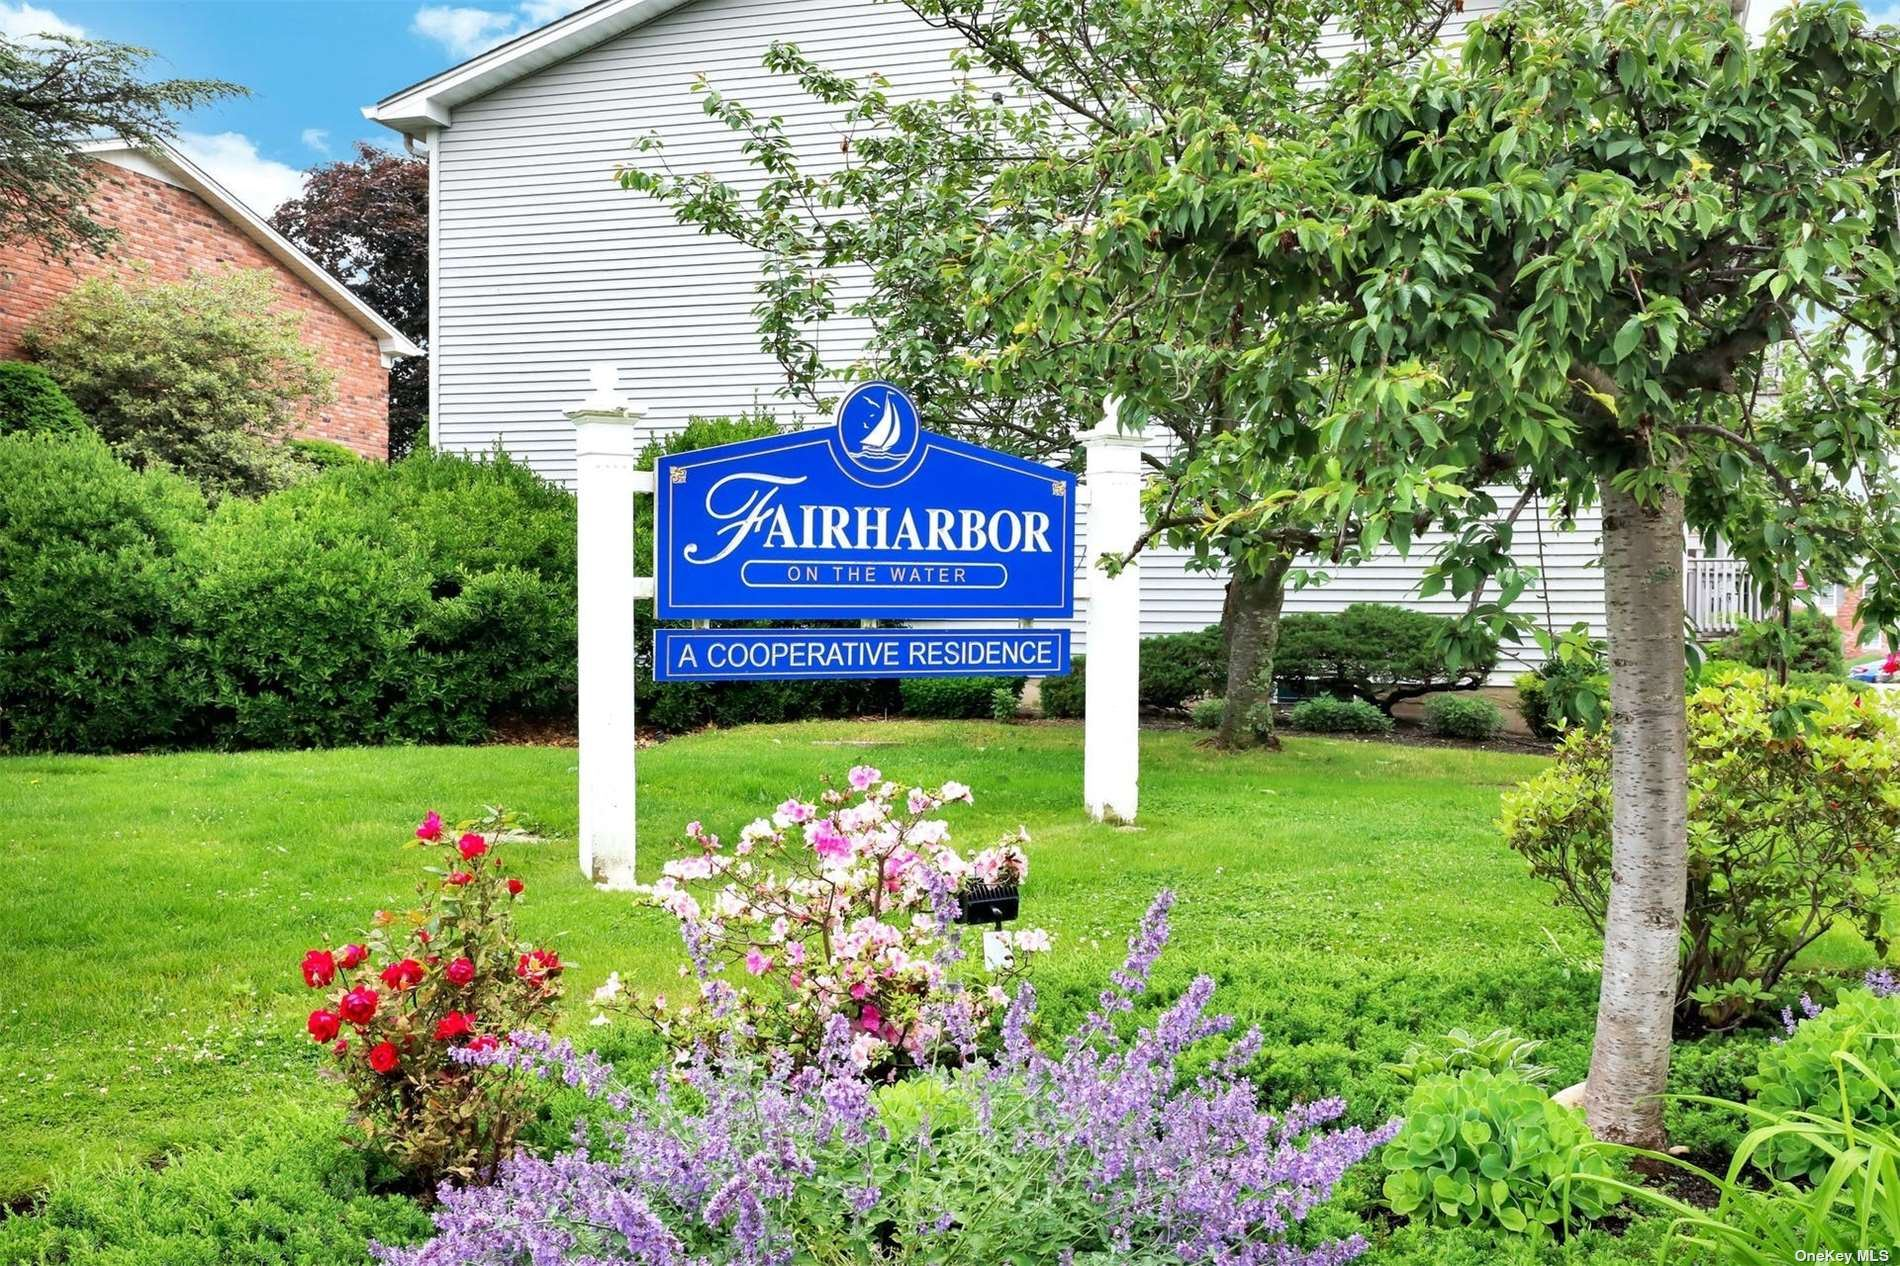 143 Fairharbor Drive #143, Patchogue, NY 11772 - MLS#: 3319578